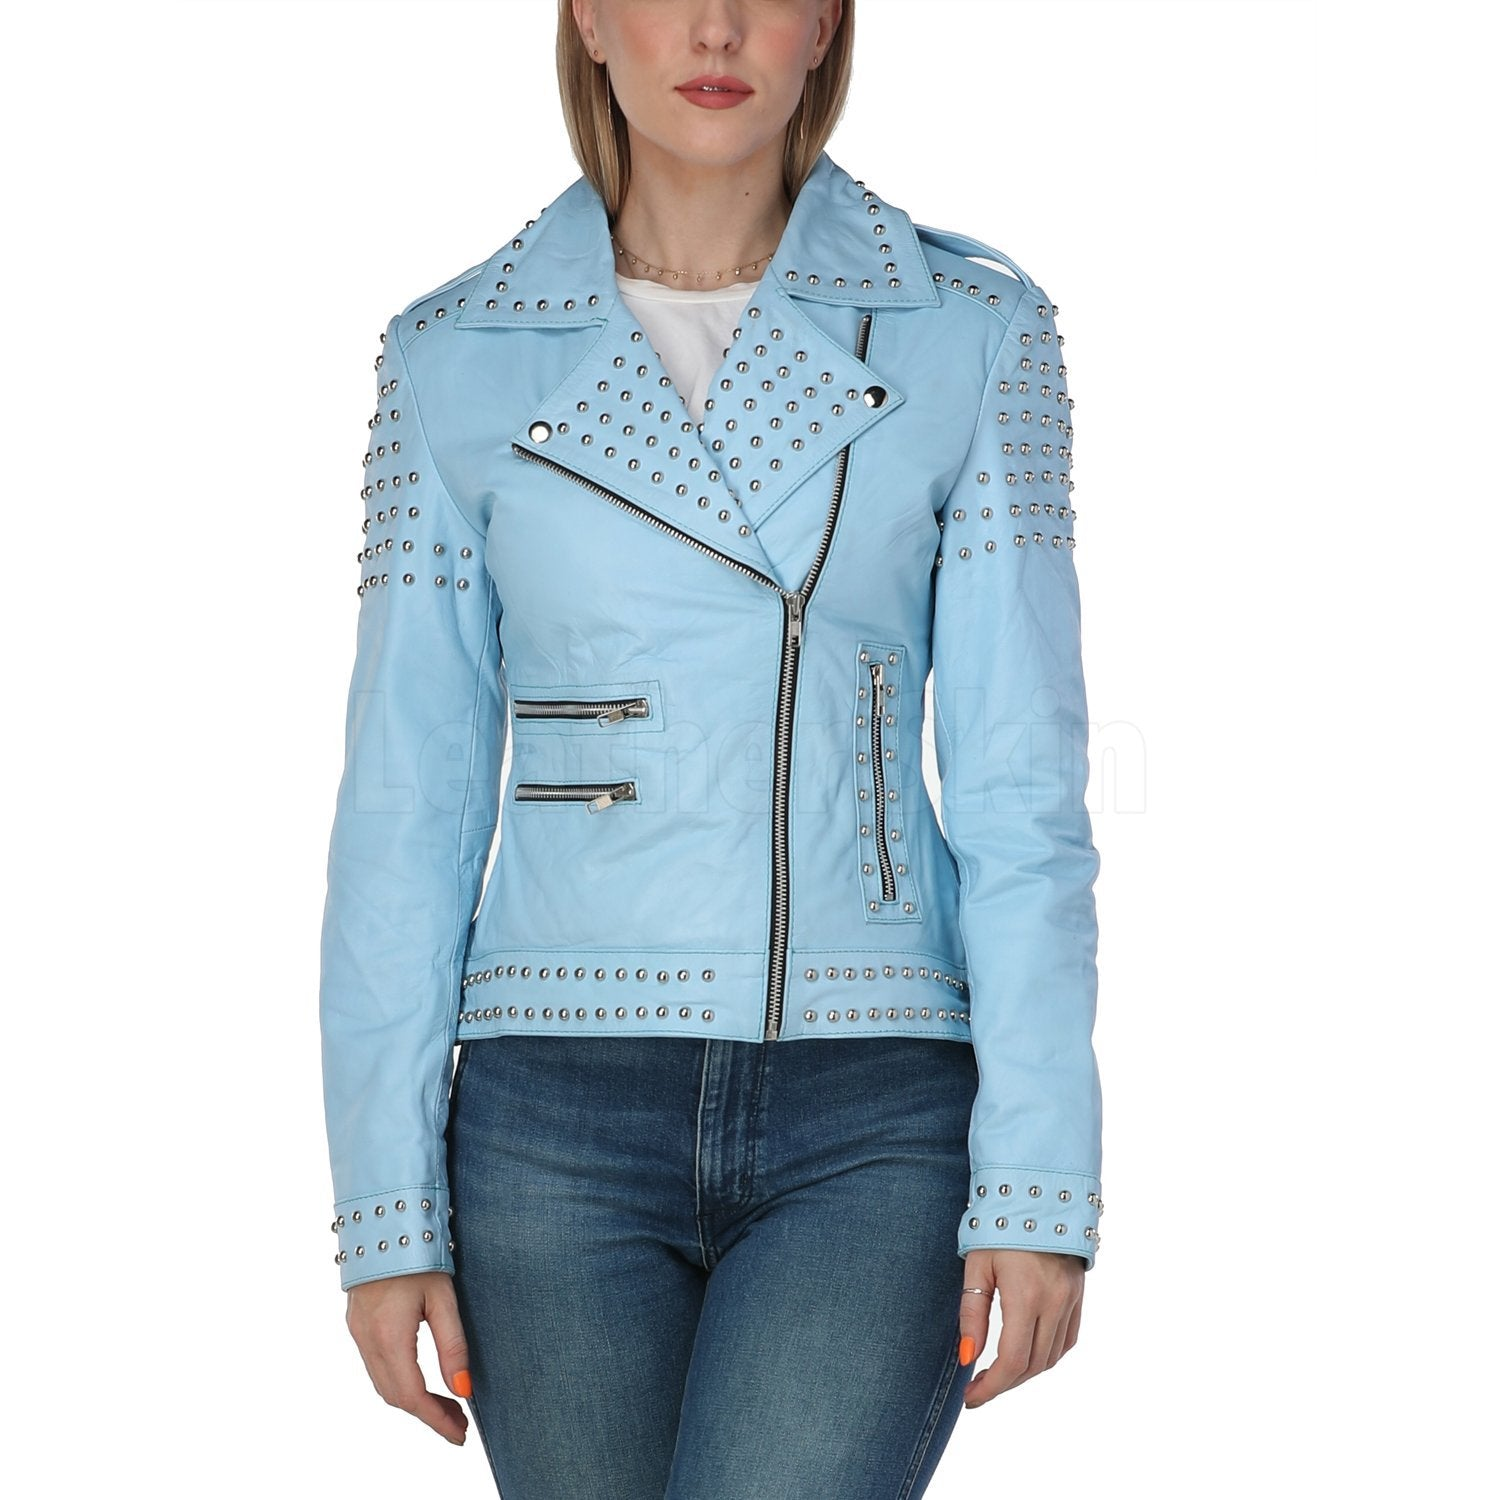 Women Sky Blue Studded Leather Jacket